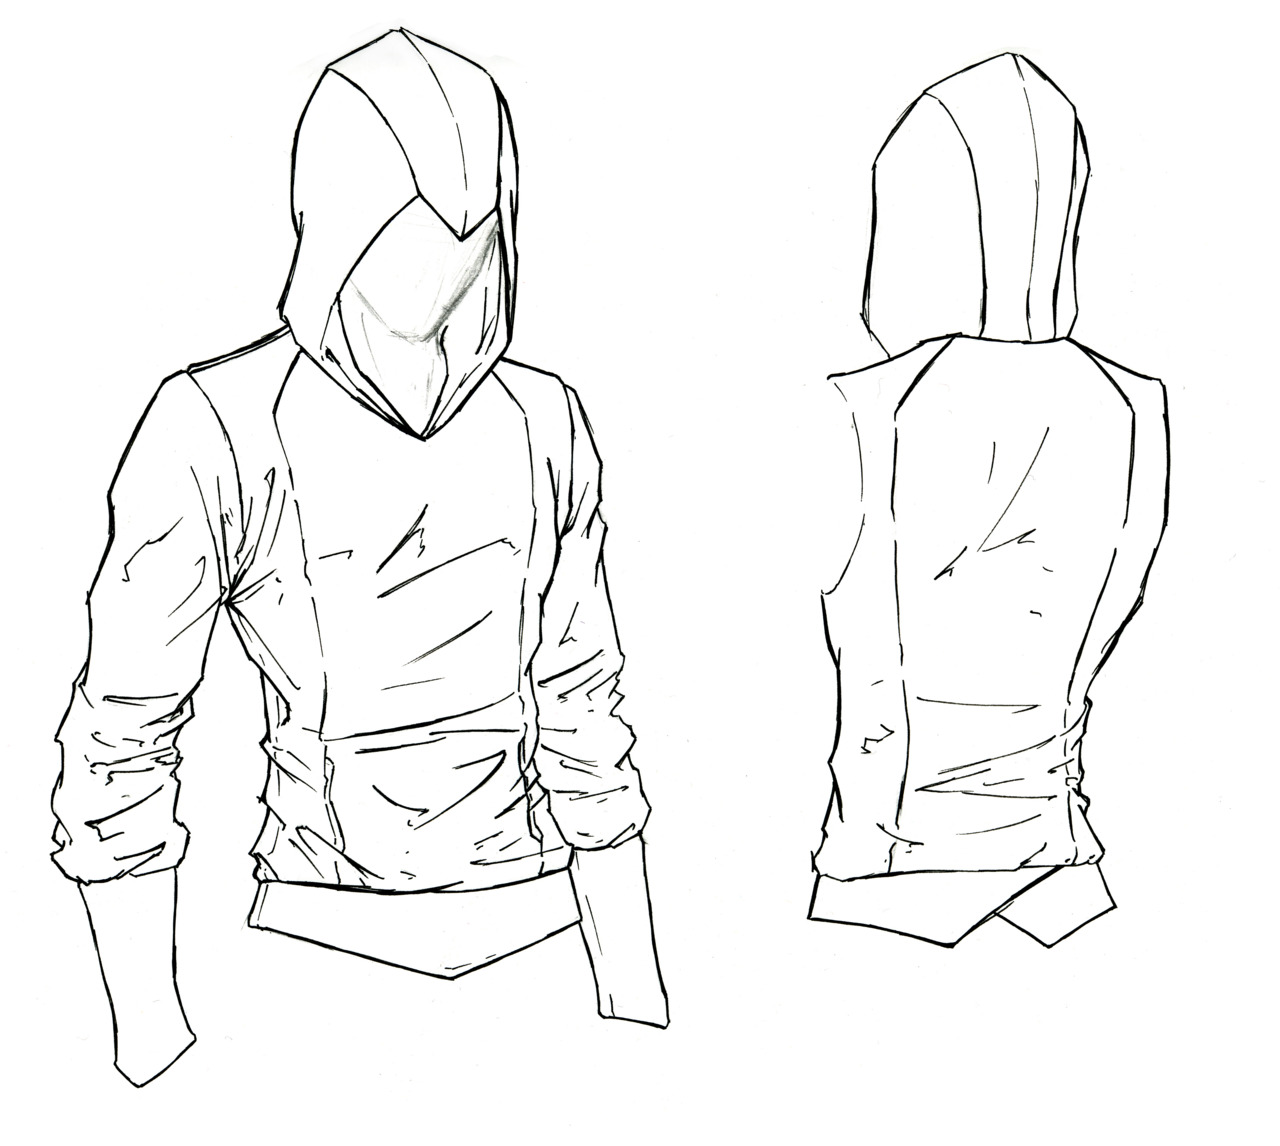 Drawn hood Best inspiration/how draw draw I